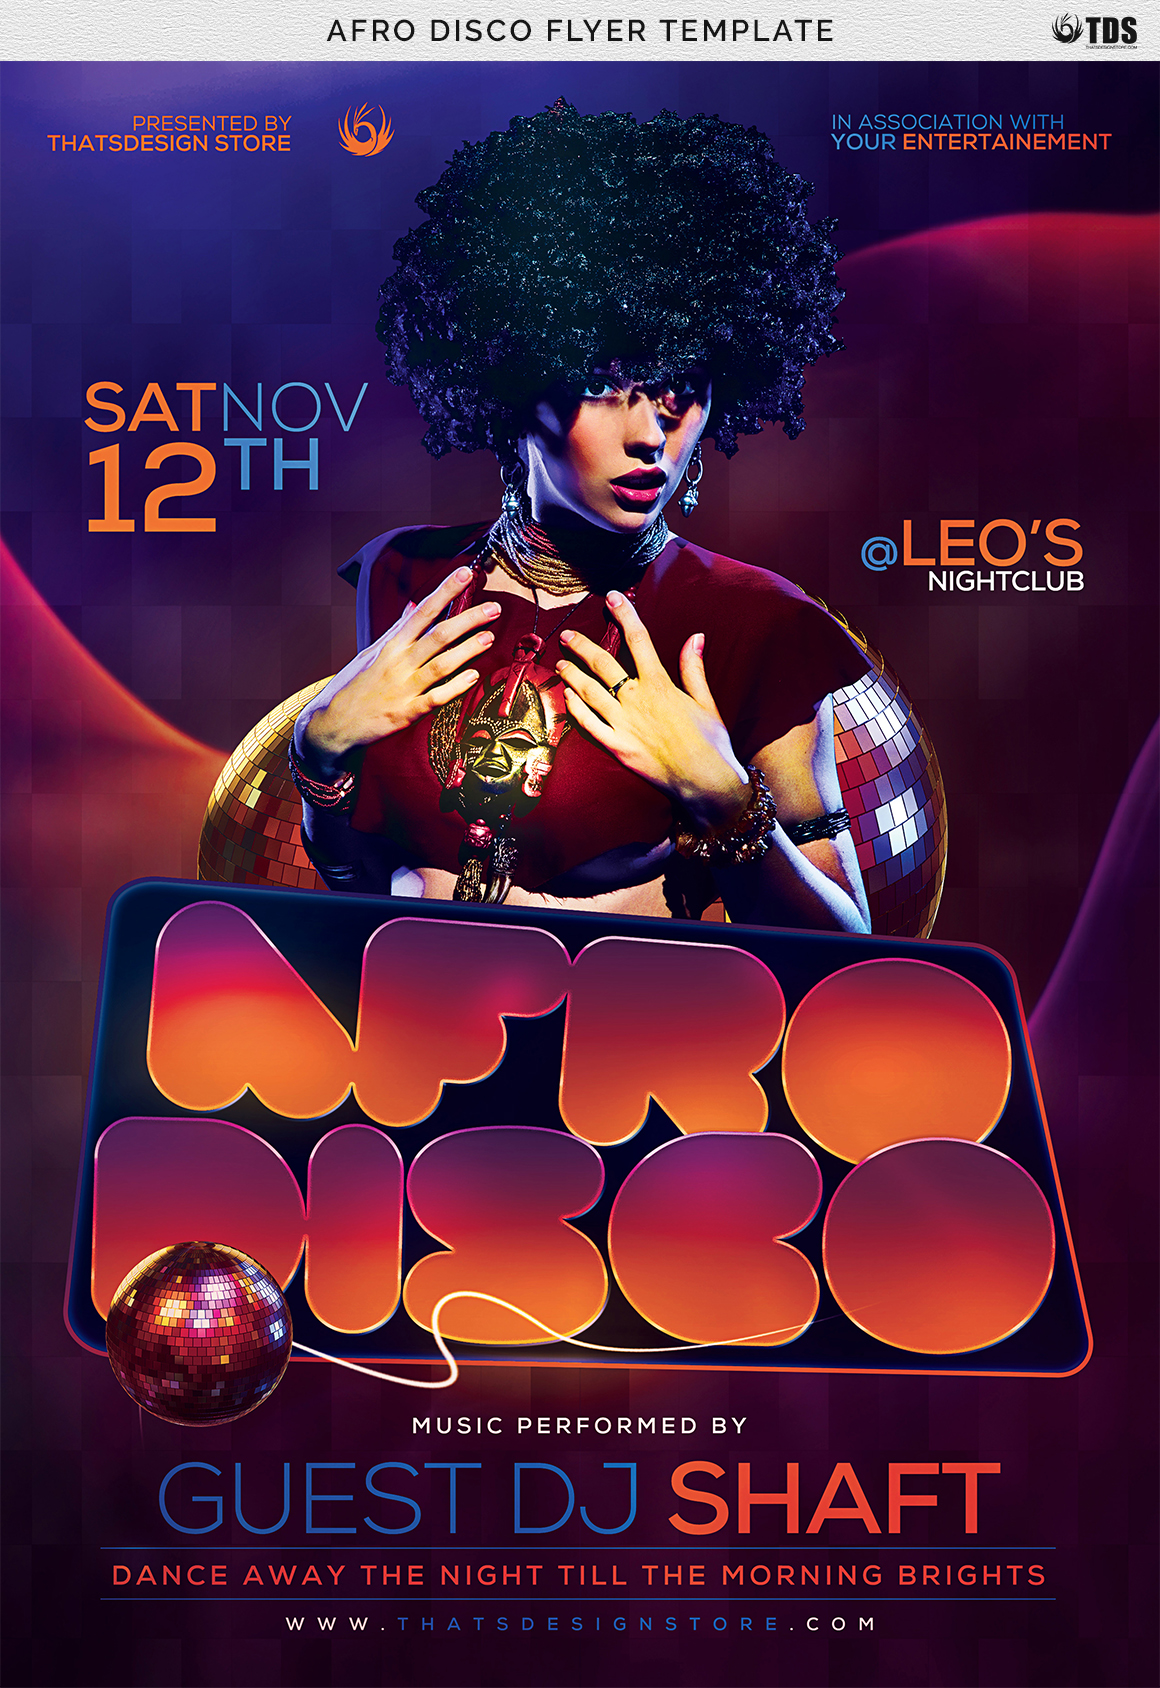 Afro Disco Flyer Template example image 7